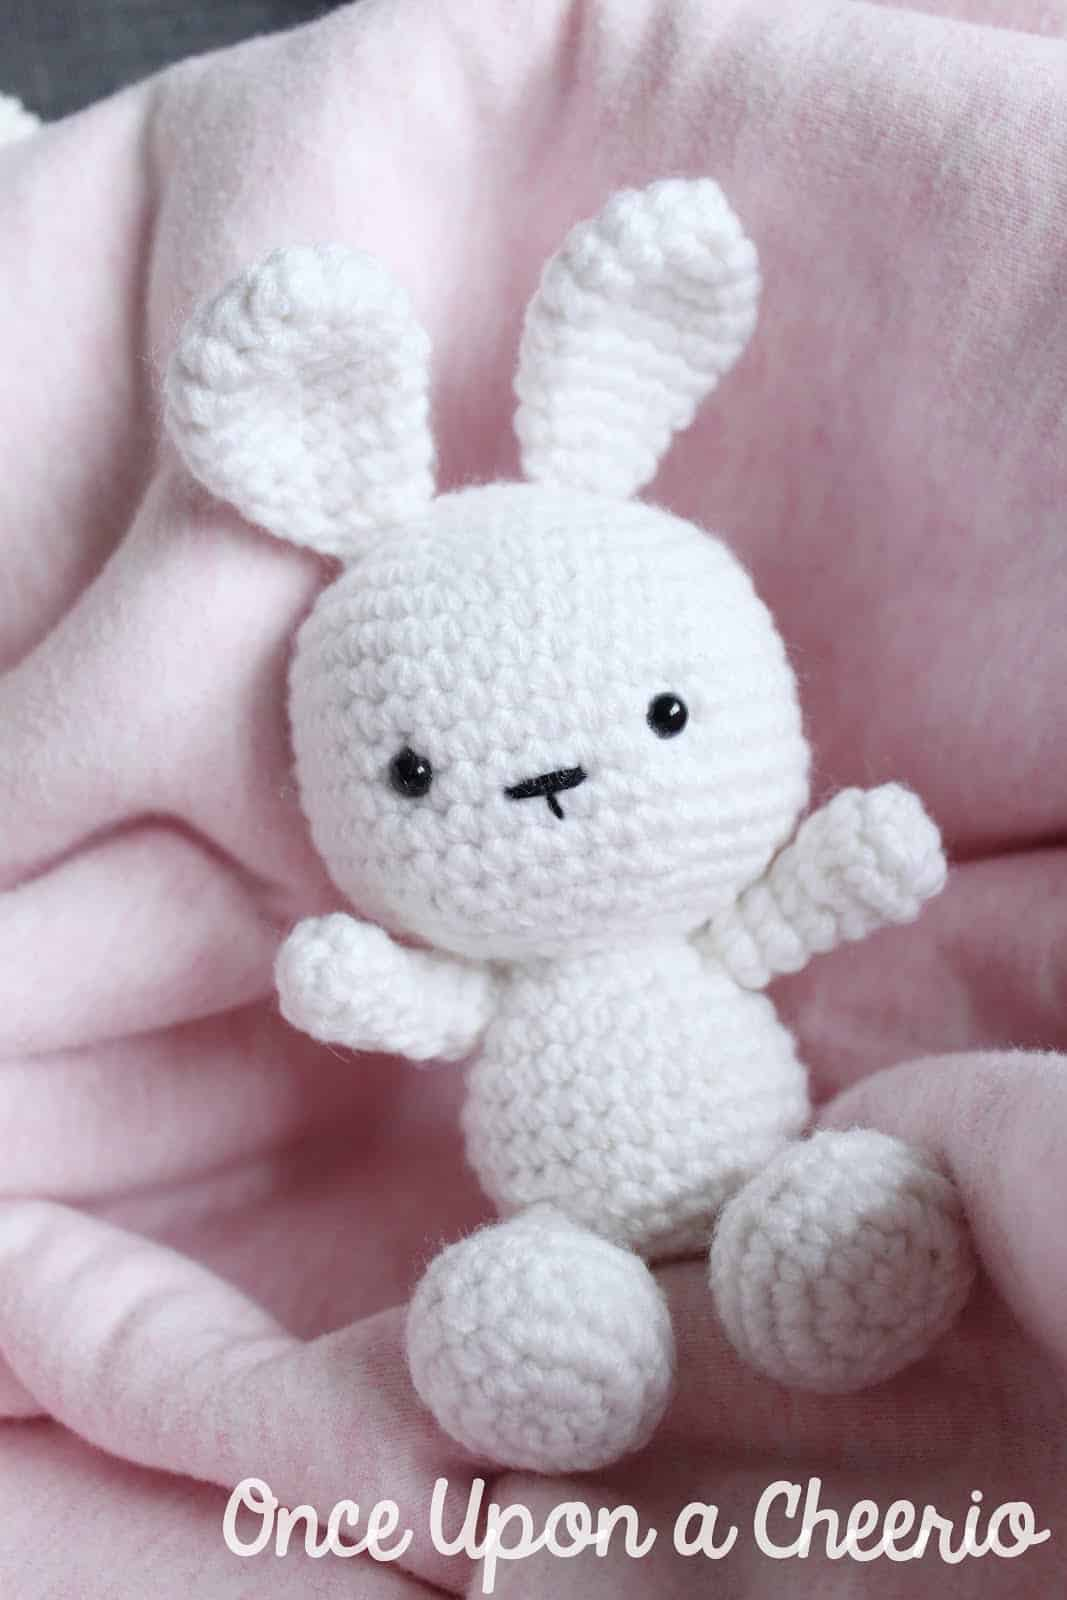 Overalls For Dress Me Bunny | Crochet bunny pattern, Crochet for boys,  Crochet toys patterns | 1600x1067